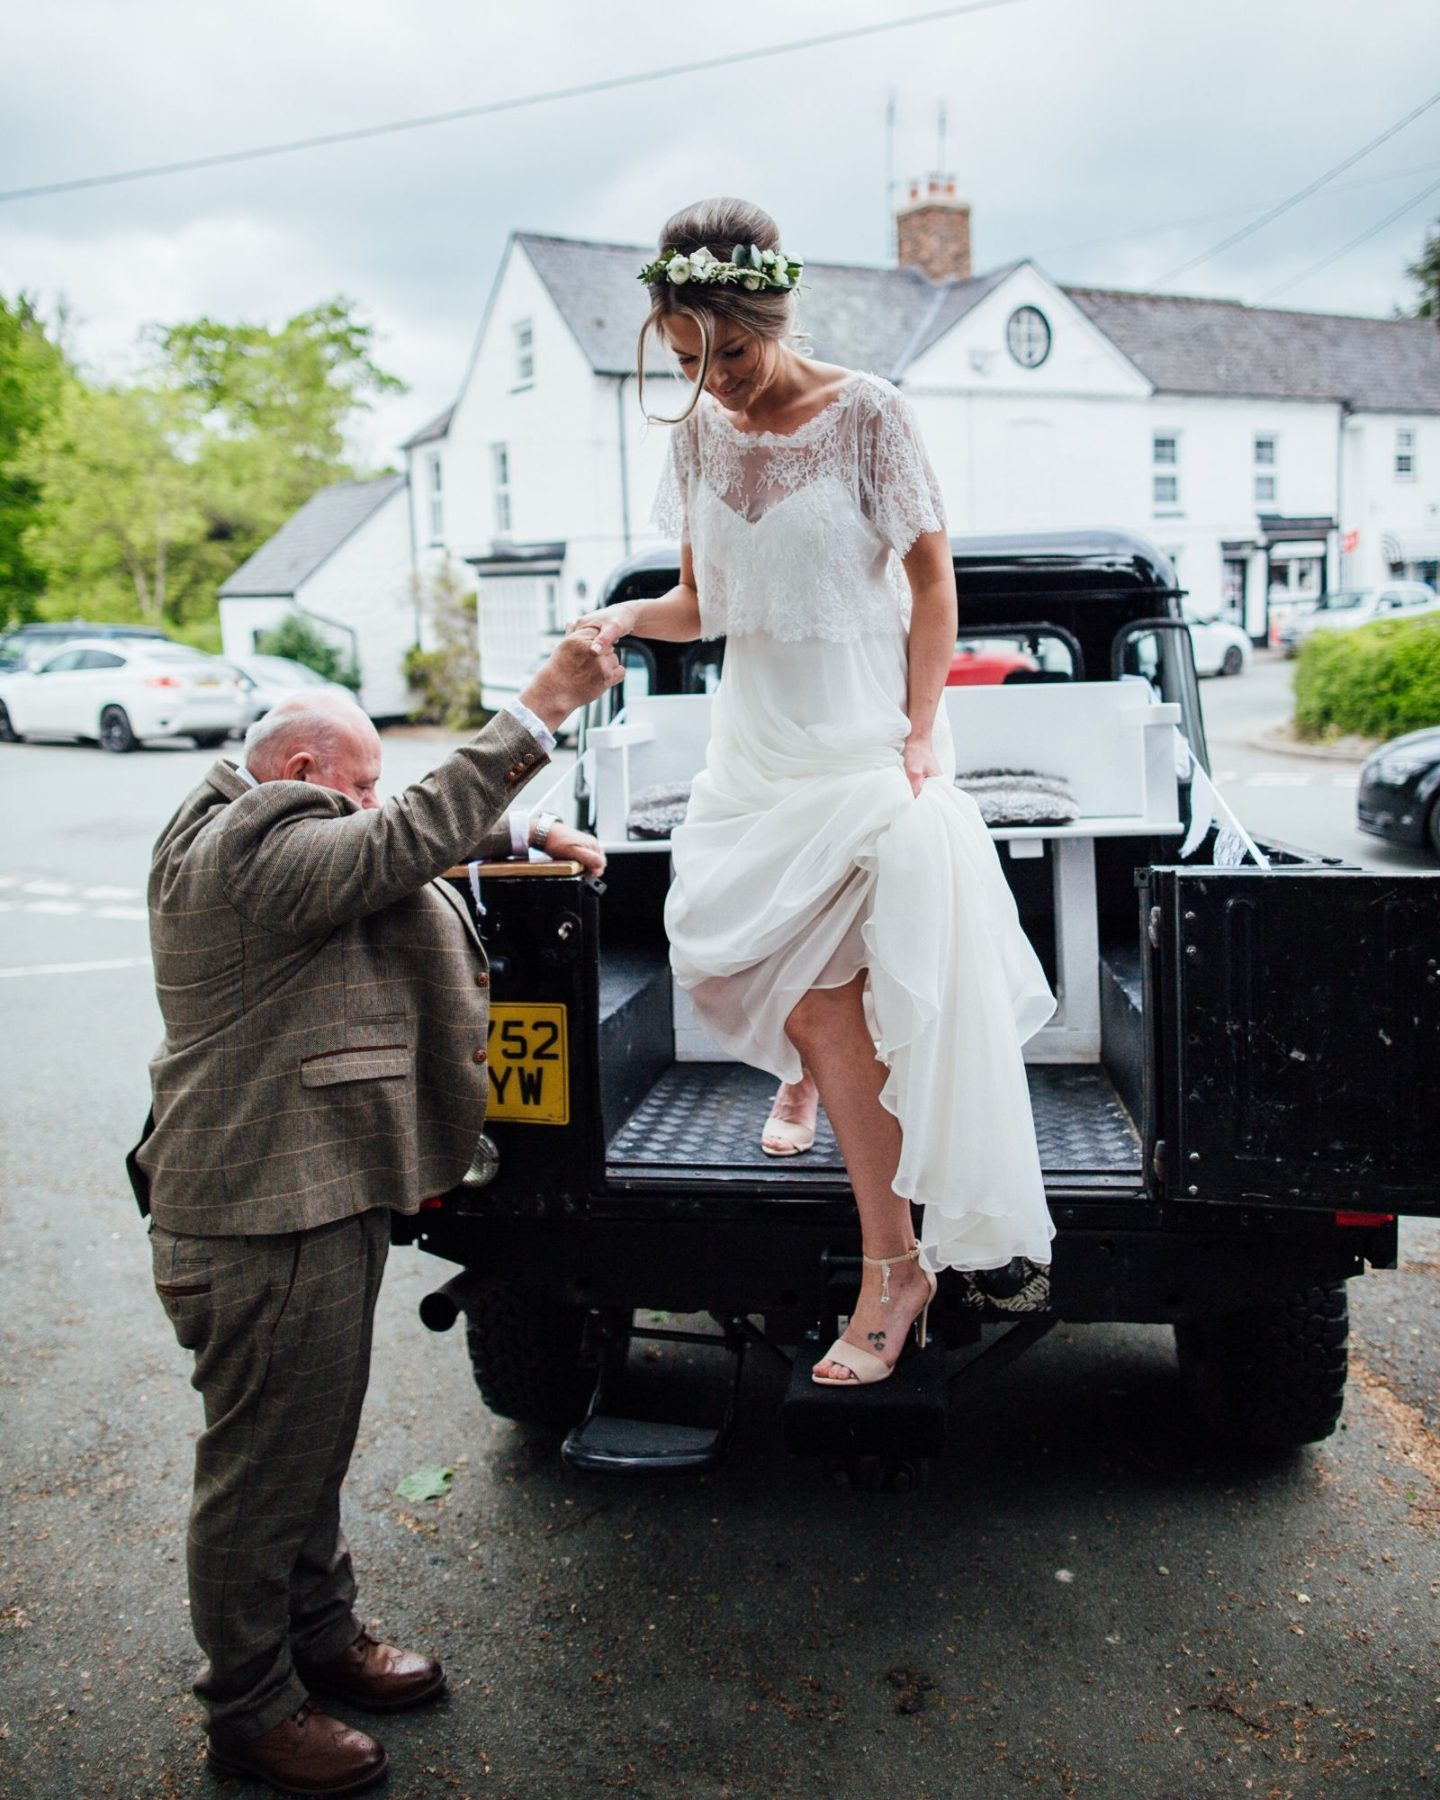 Wedding transport Land Rover Defender